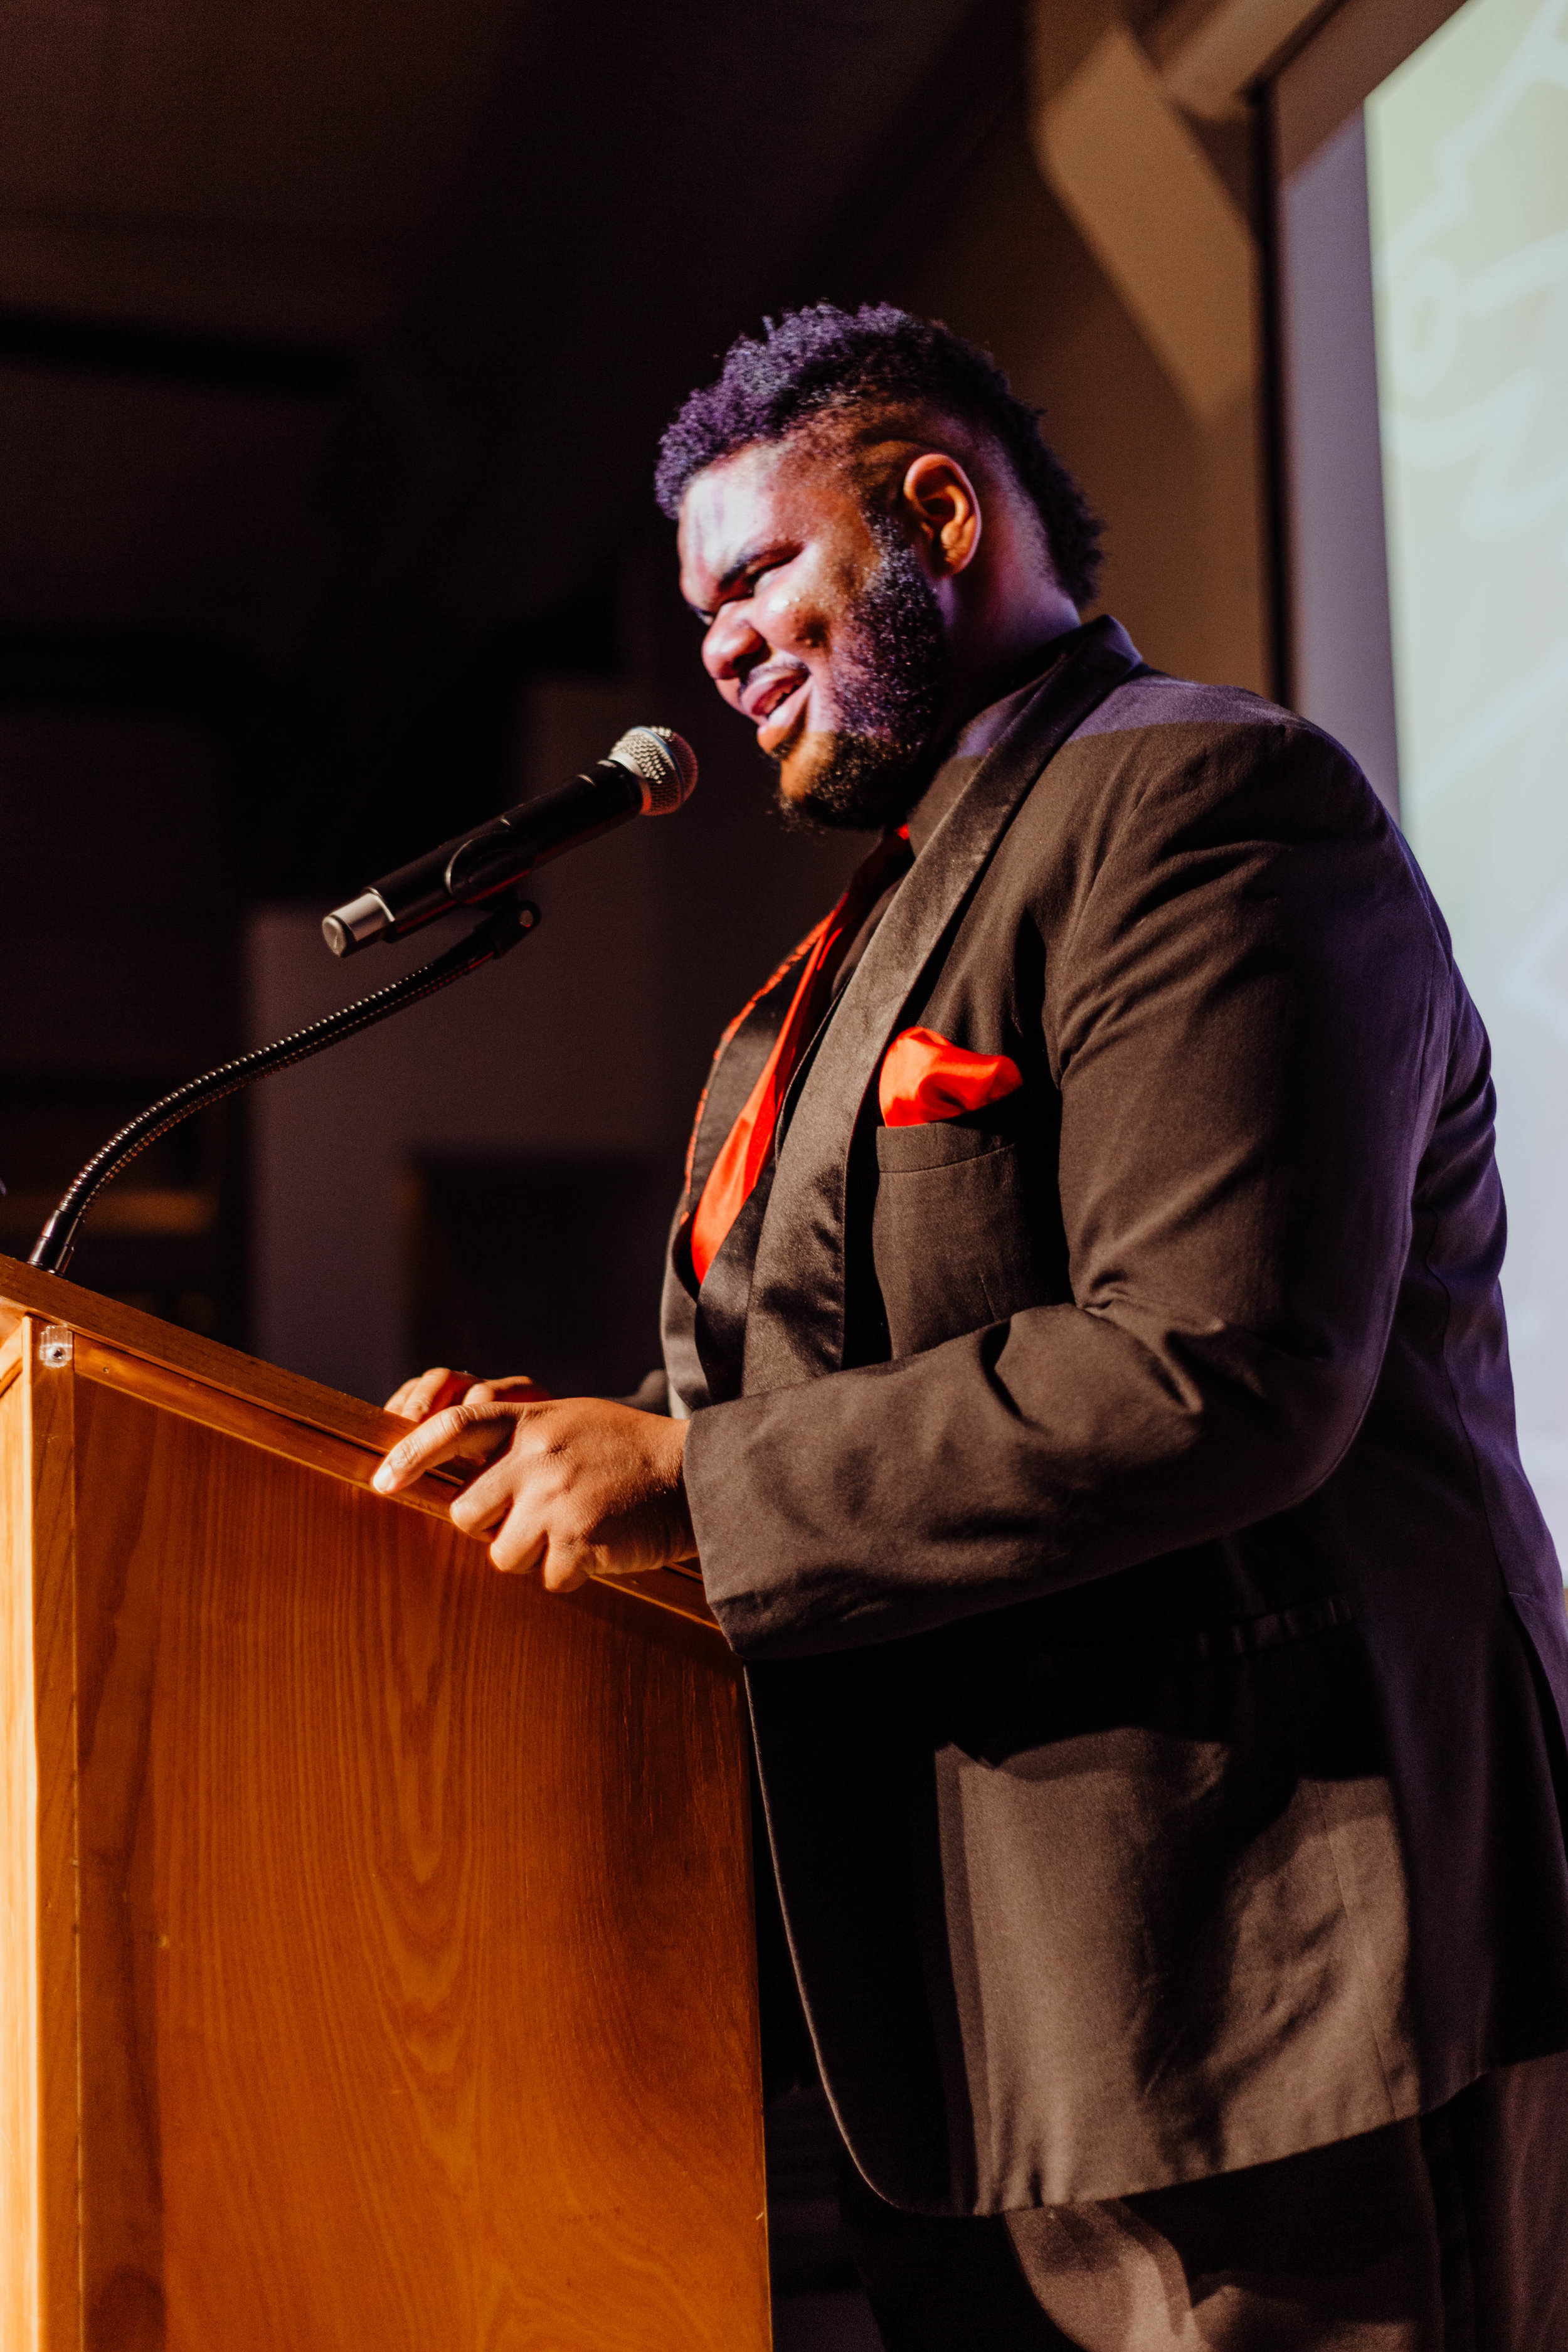 Host Javoris James doing his thing during the awards.